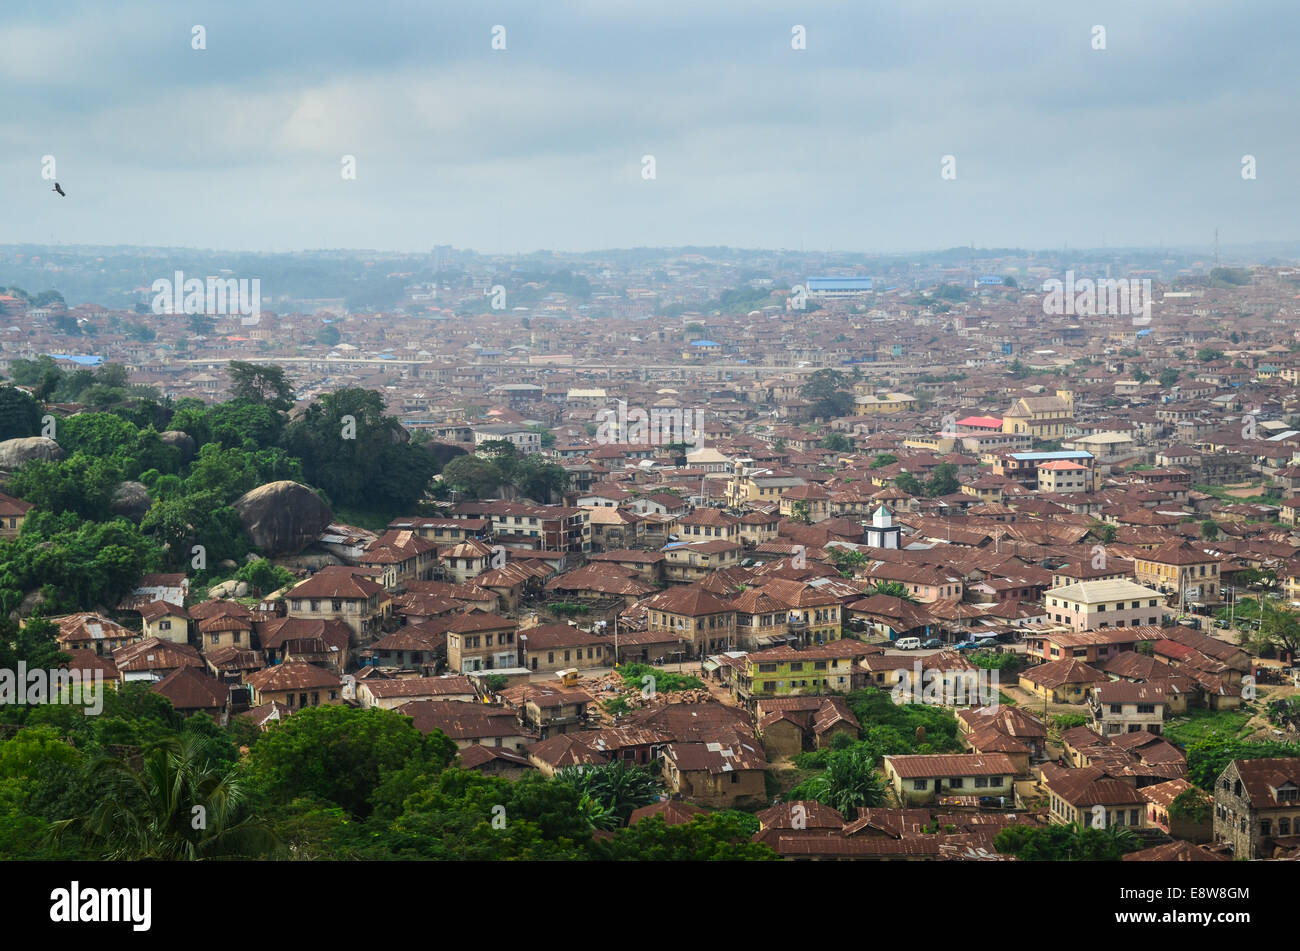 Aerial view of the city of Abeokuta, Ogun state (south